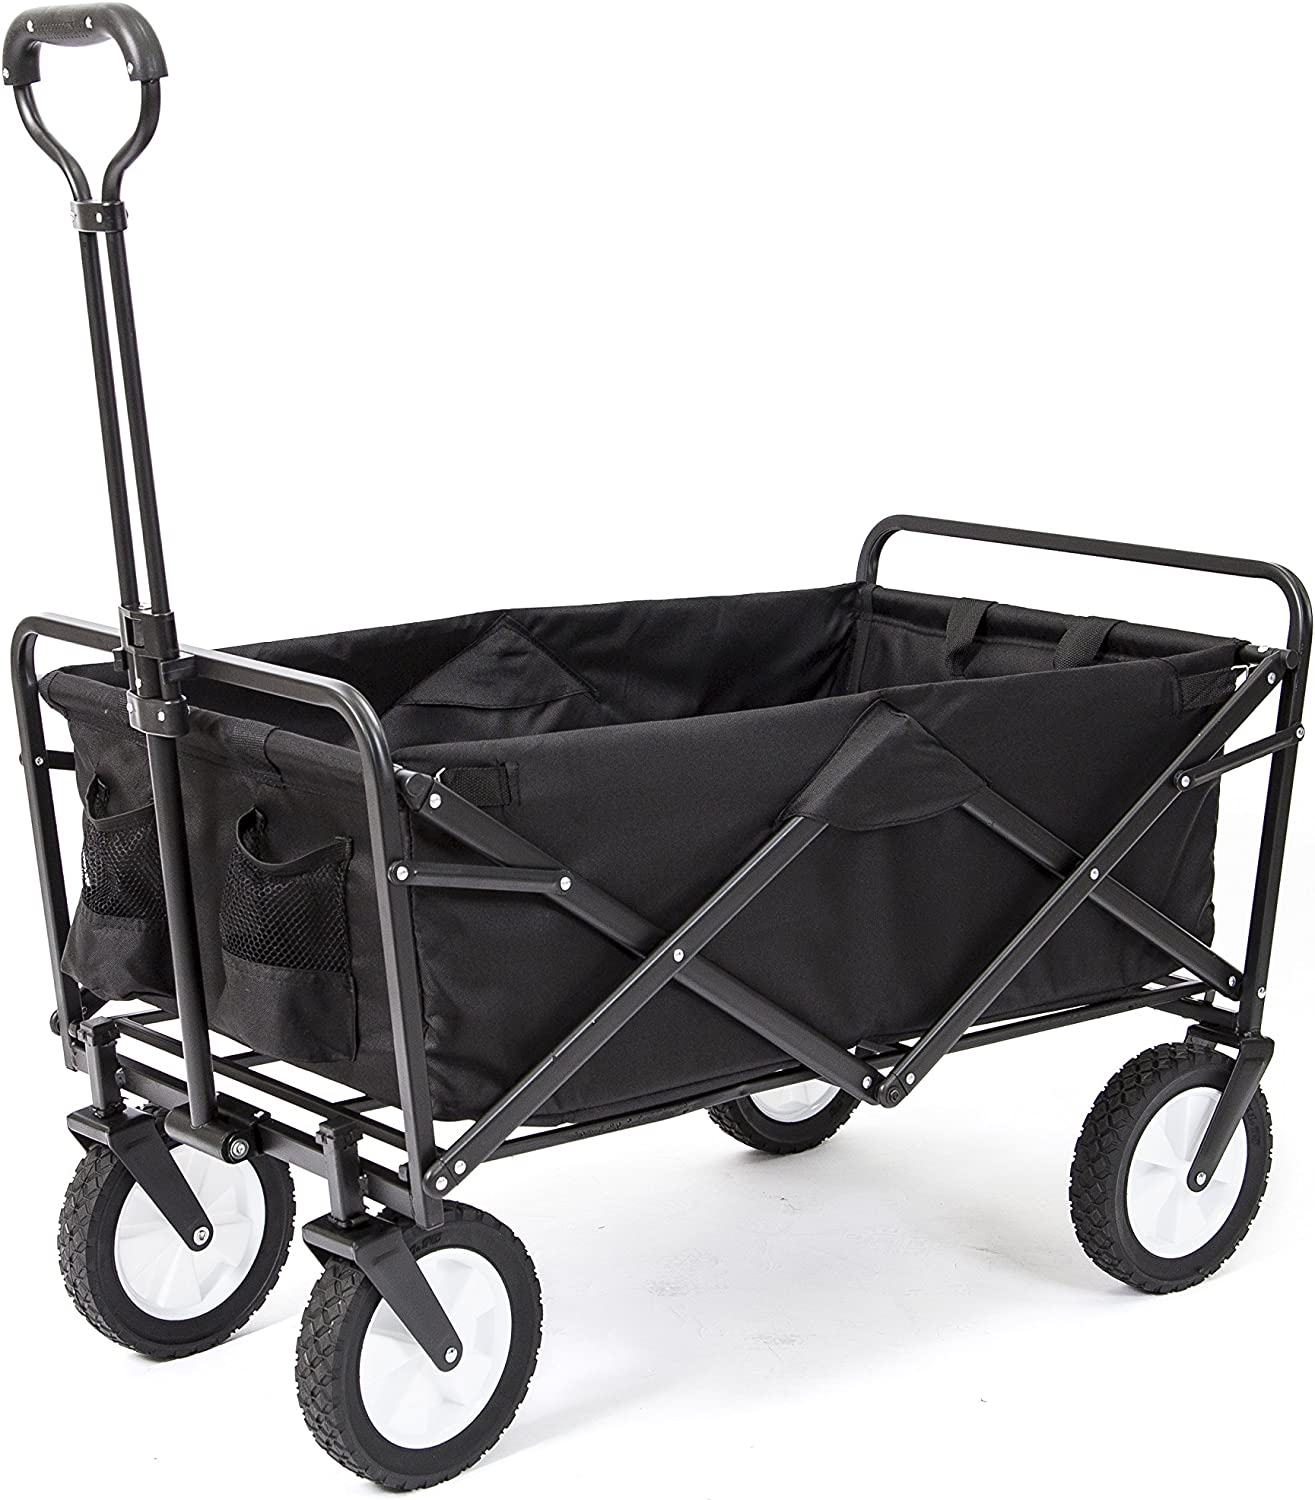 The Best Folding Wagon - Our pick